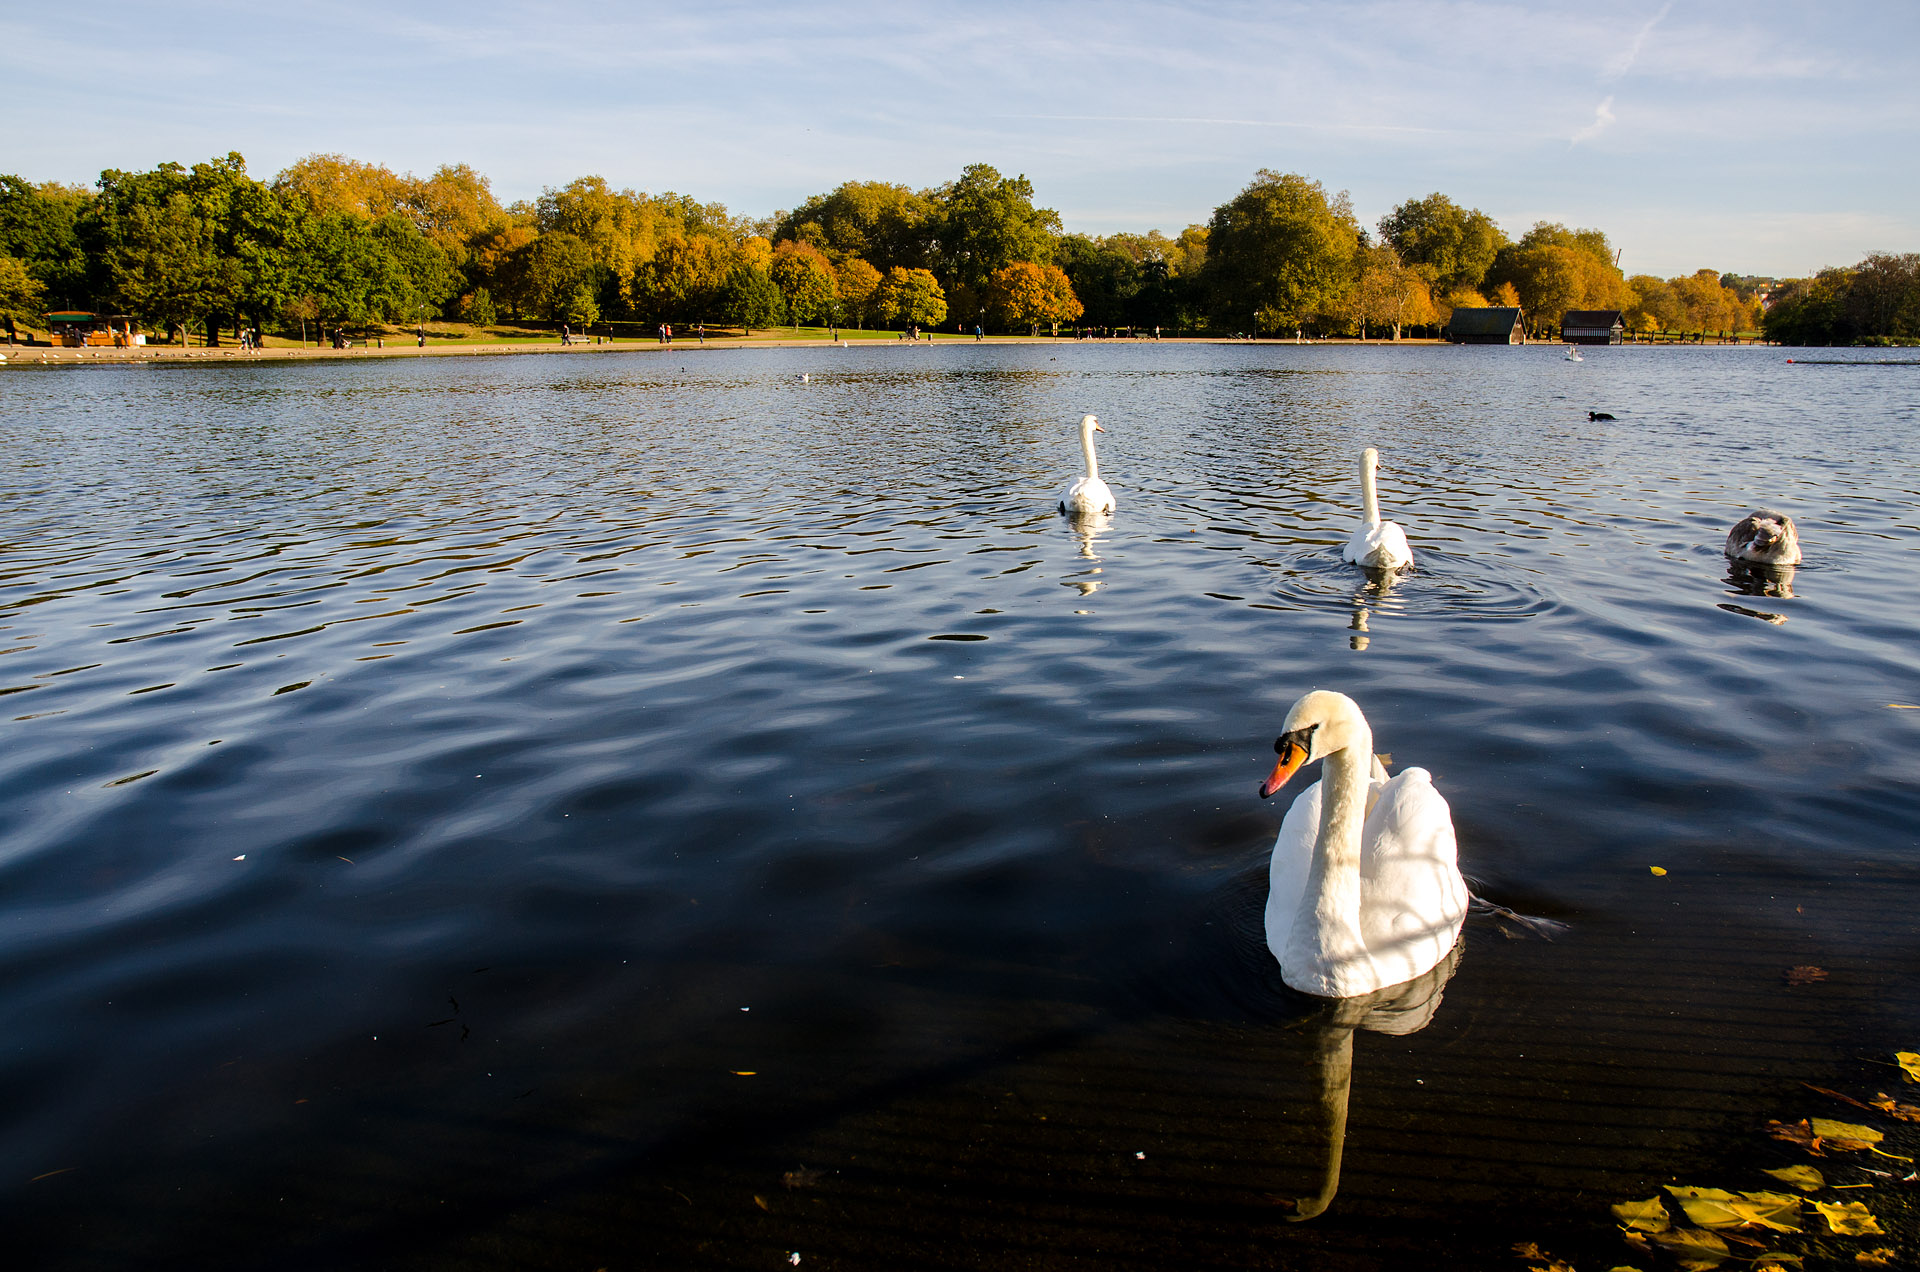 Hyde Park (The Serpentine)